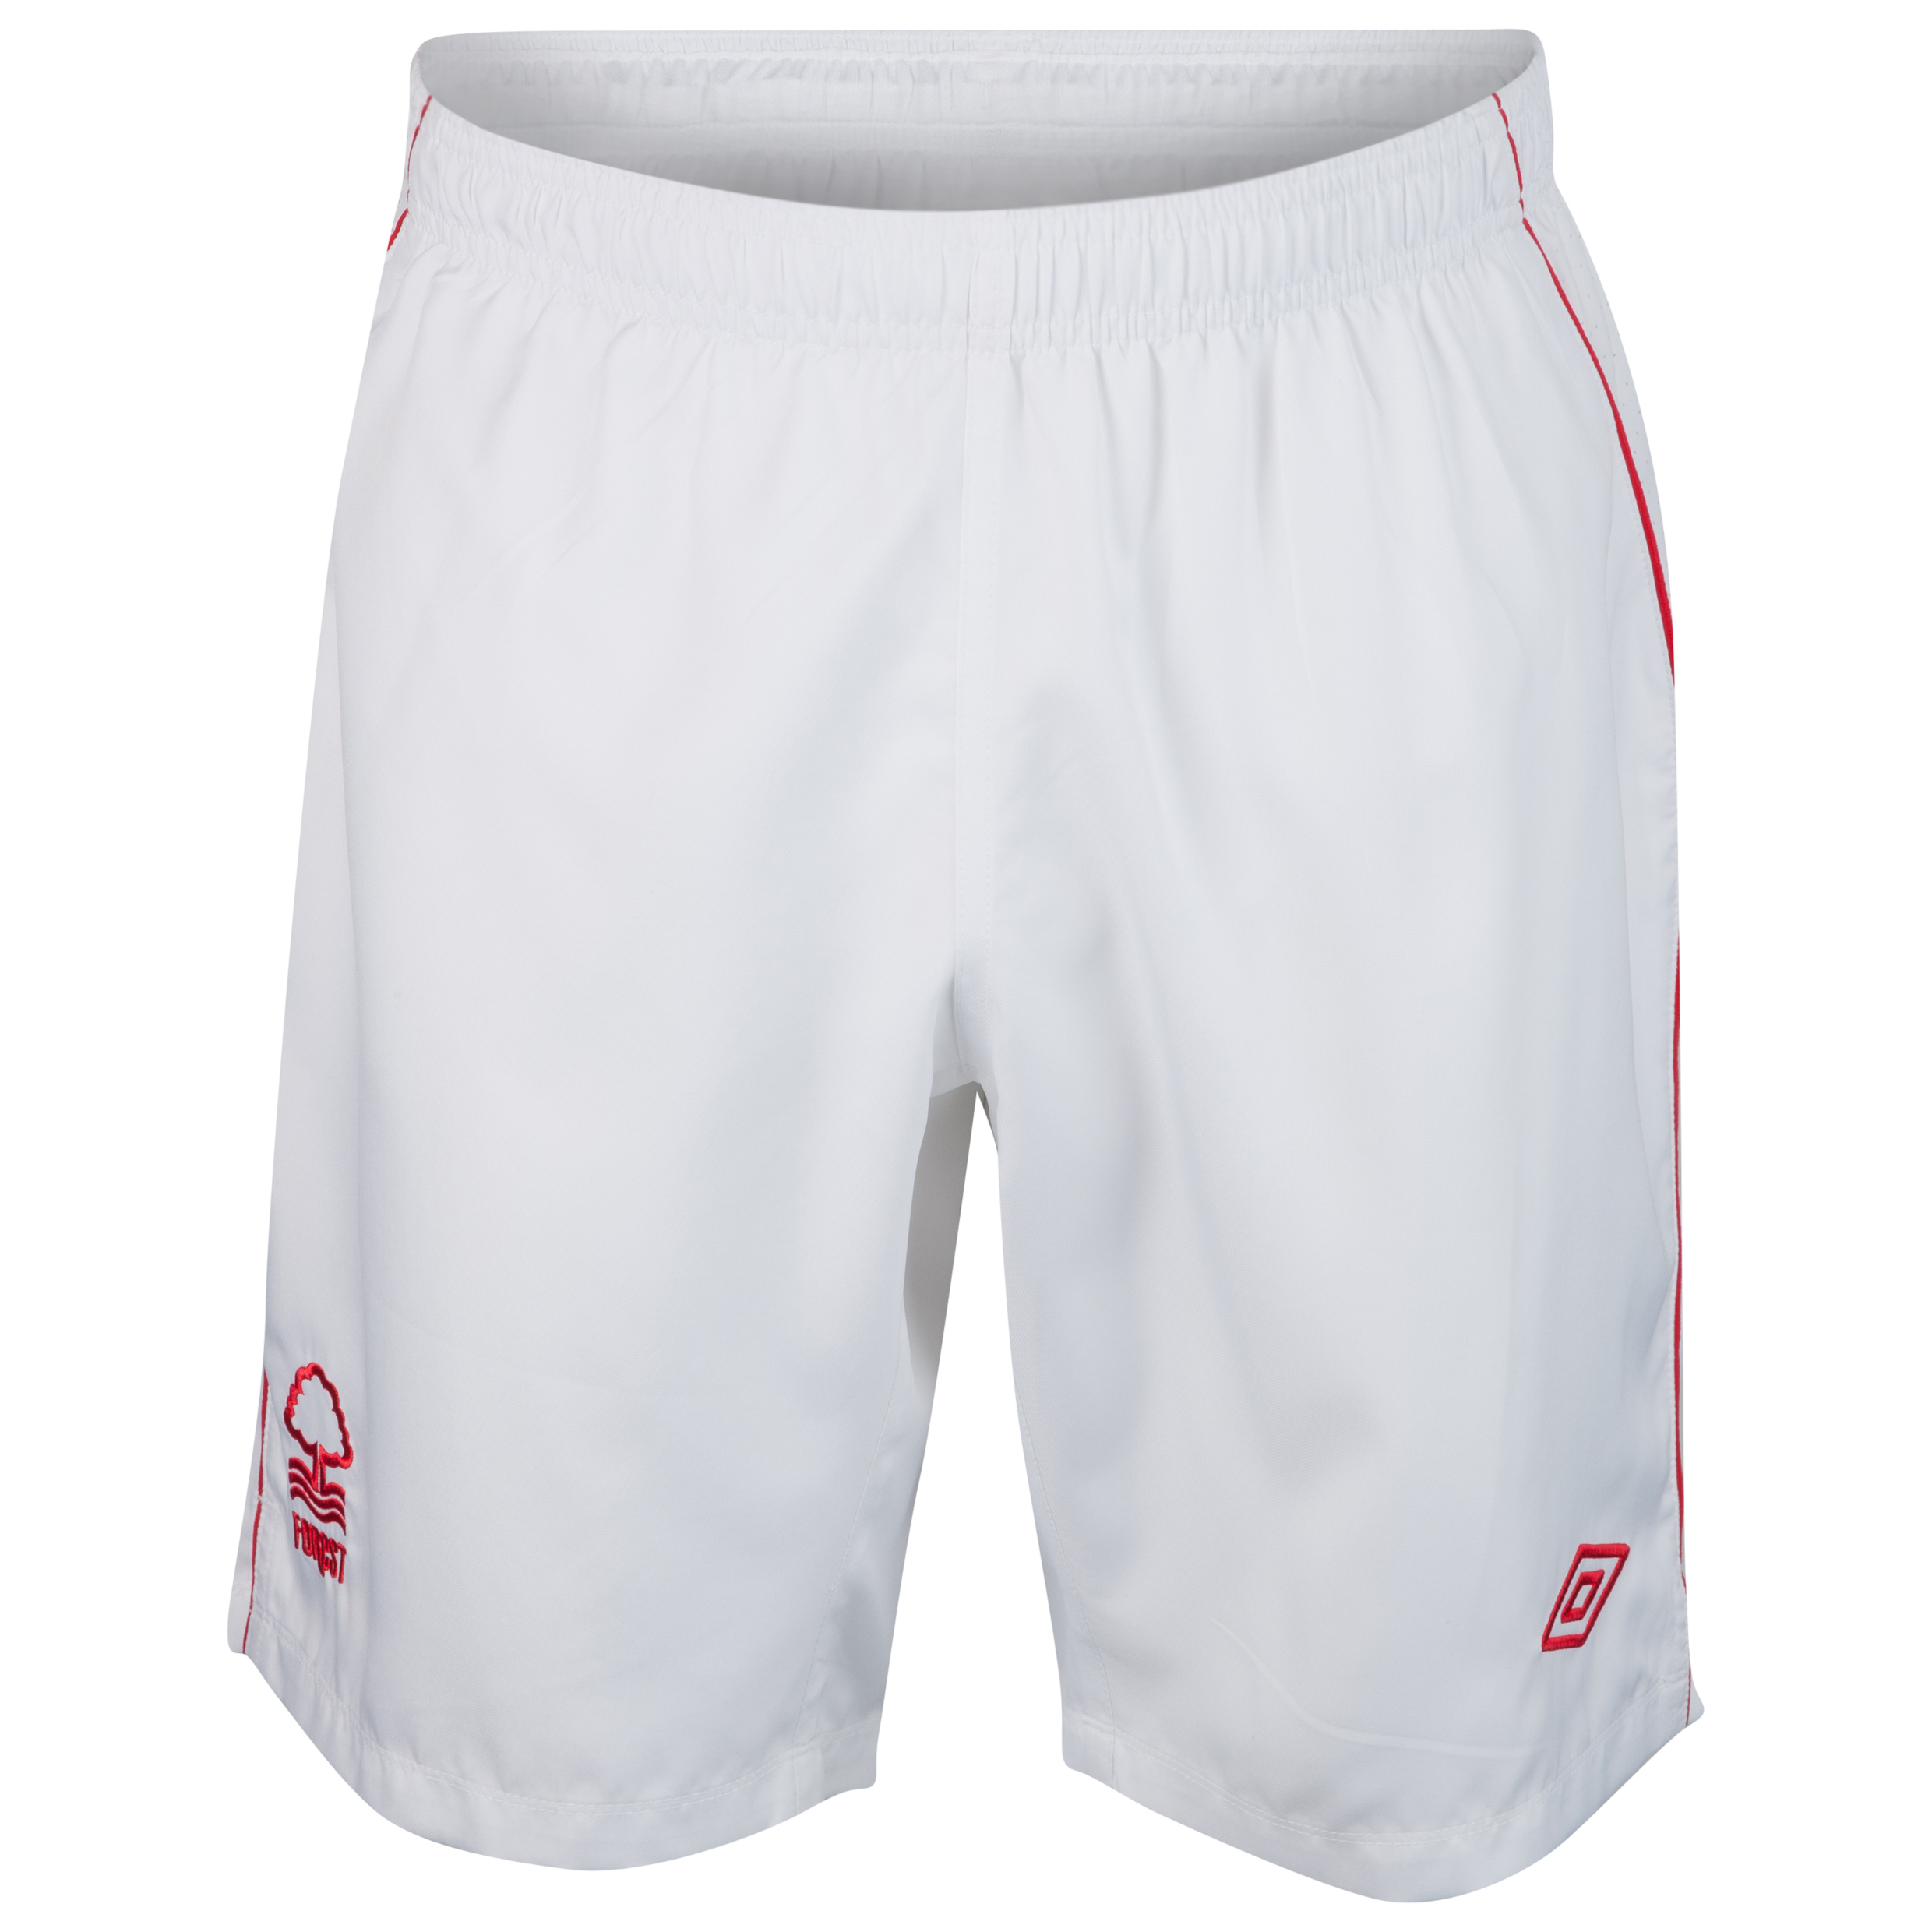 Nottingham Forest Home Short 2012/13